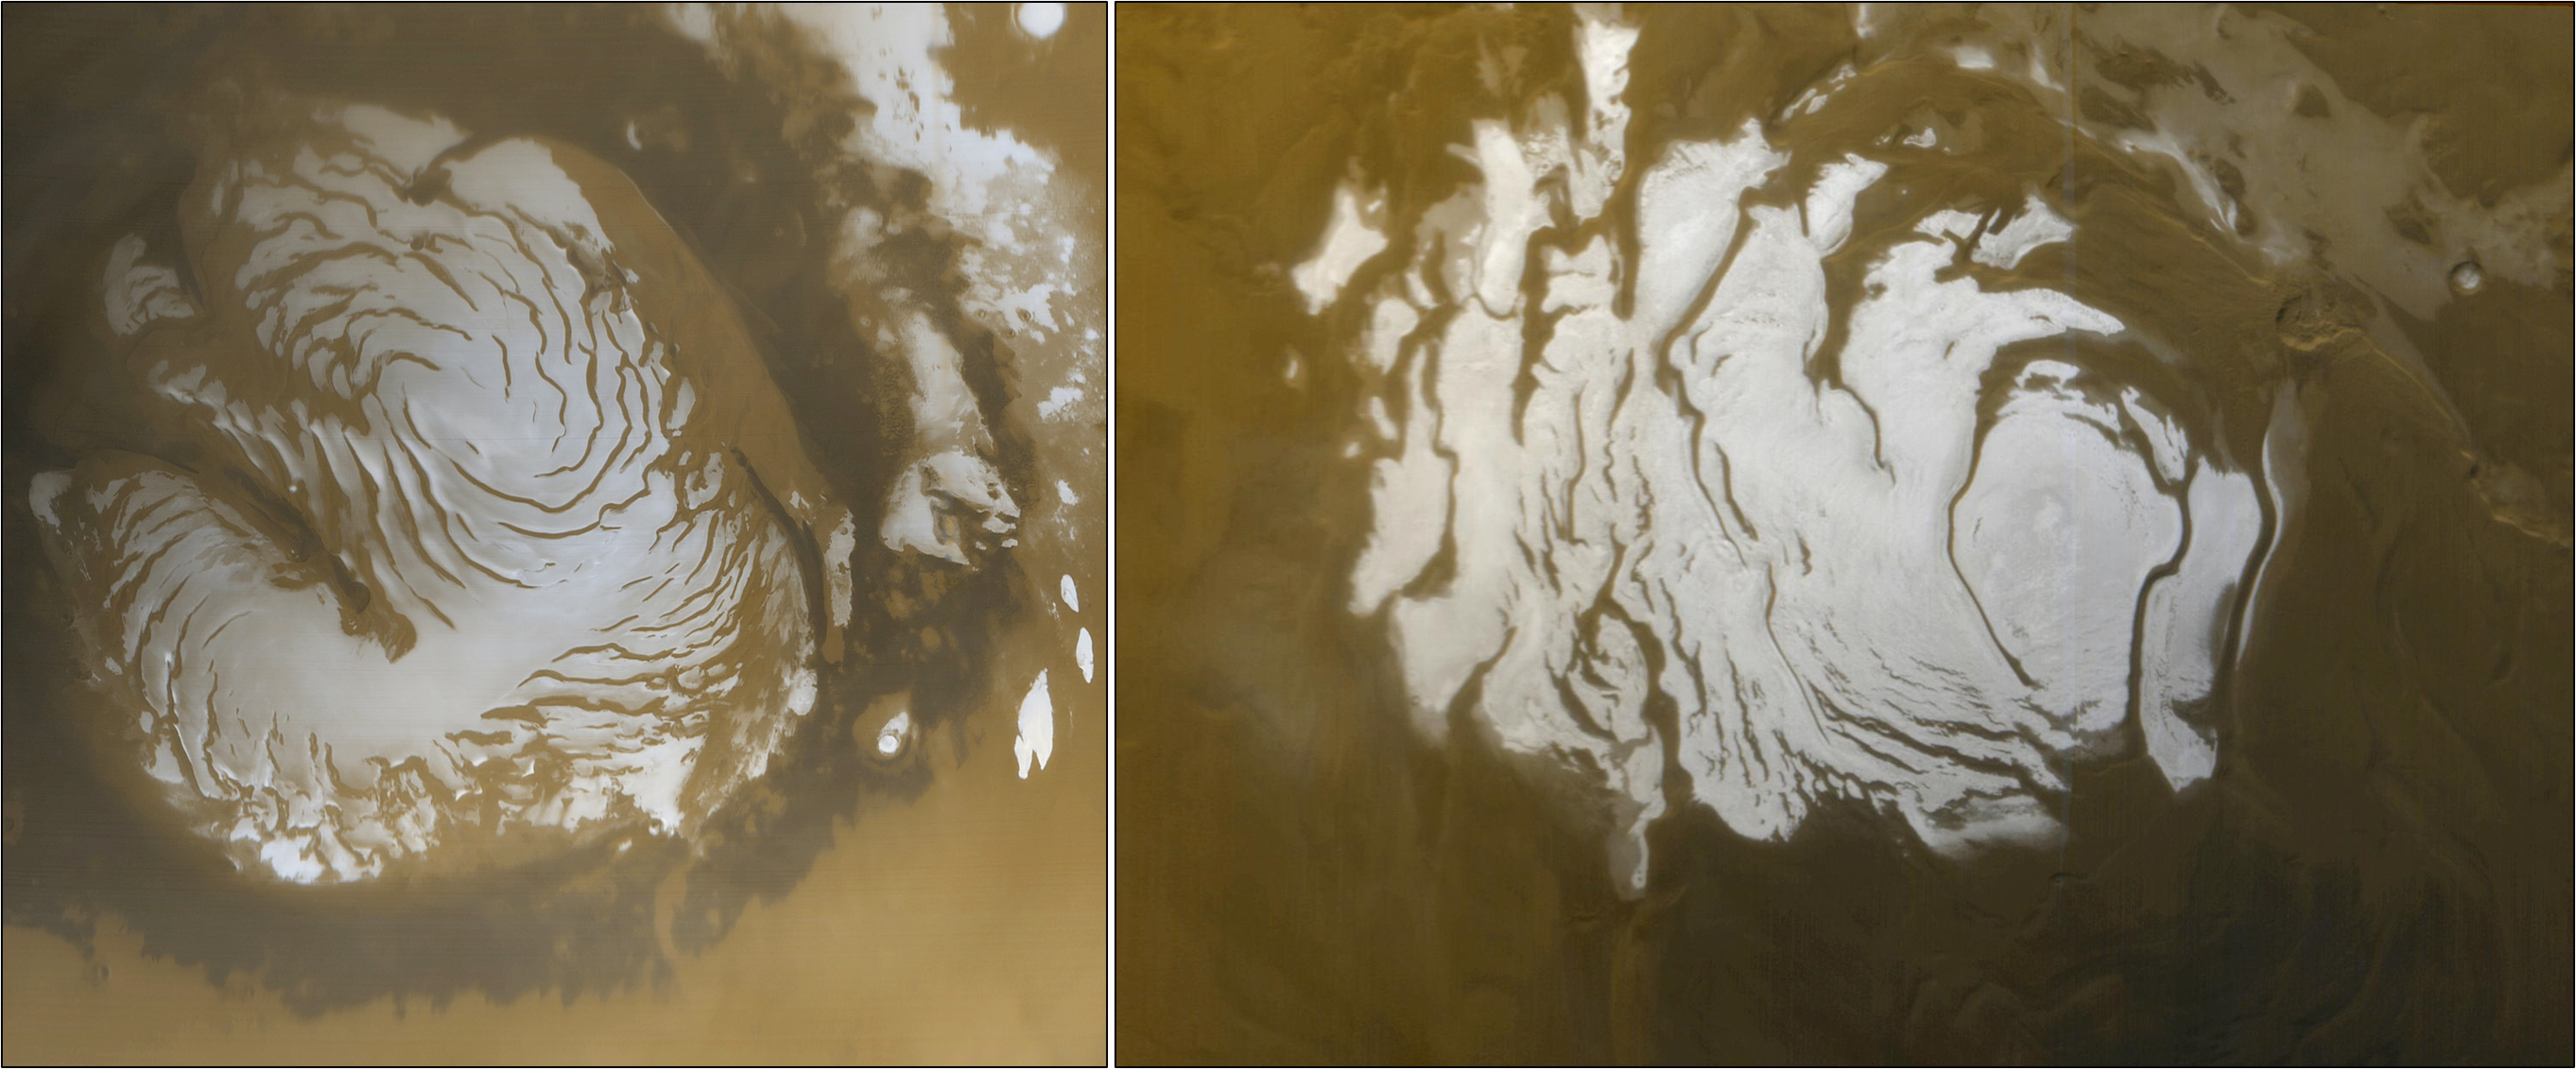 View of the north and south poles of Mars